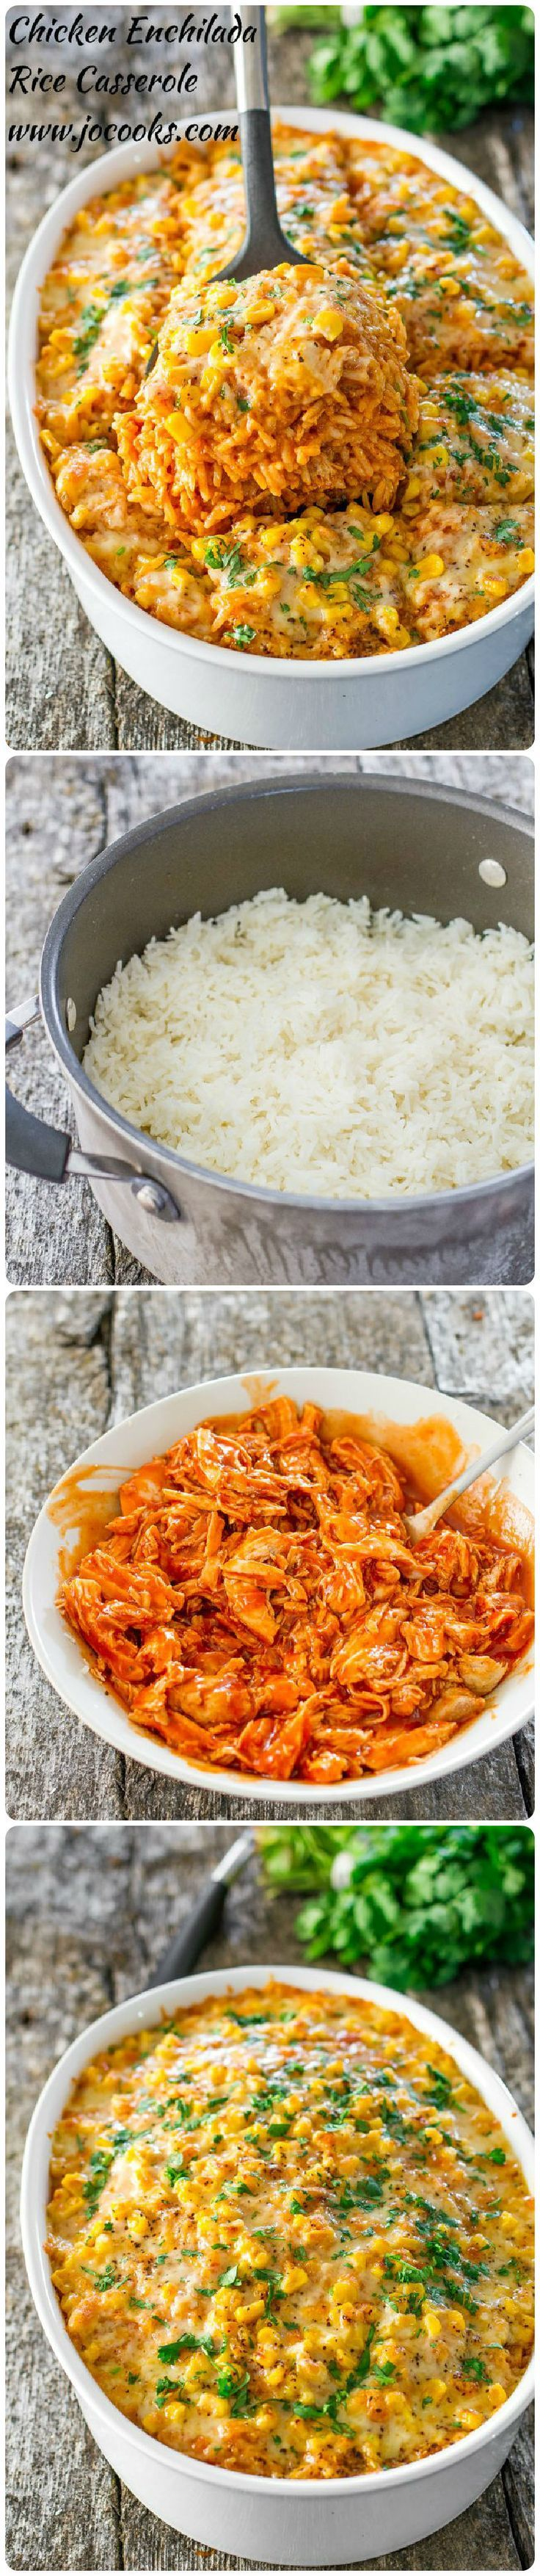 Gluten Free Chicken Enchilada Rice Casserole – all the makings of a chicken enchilada but with rice. It's simply delicious!